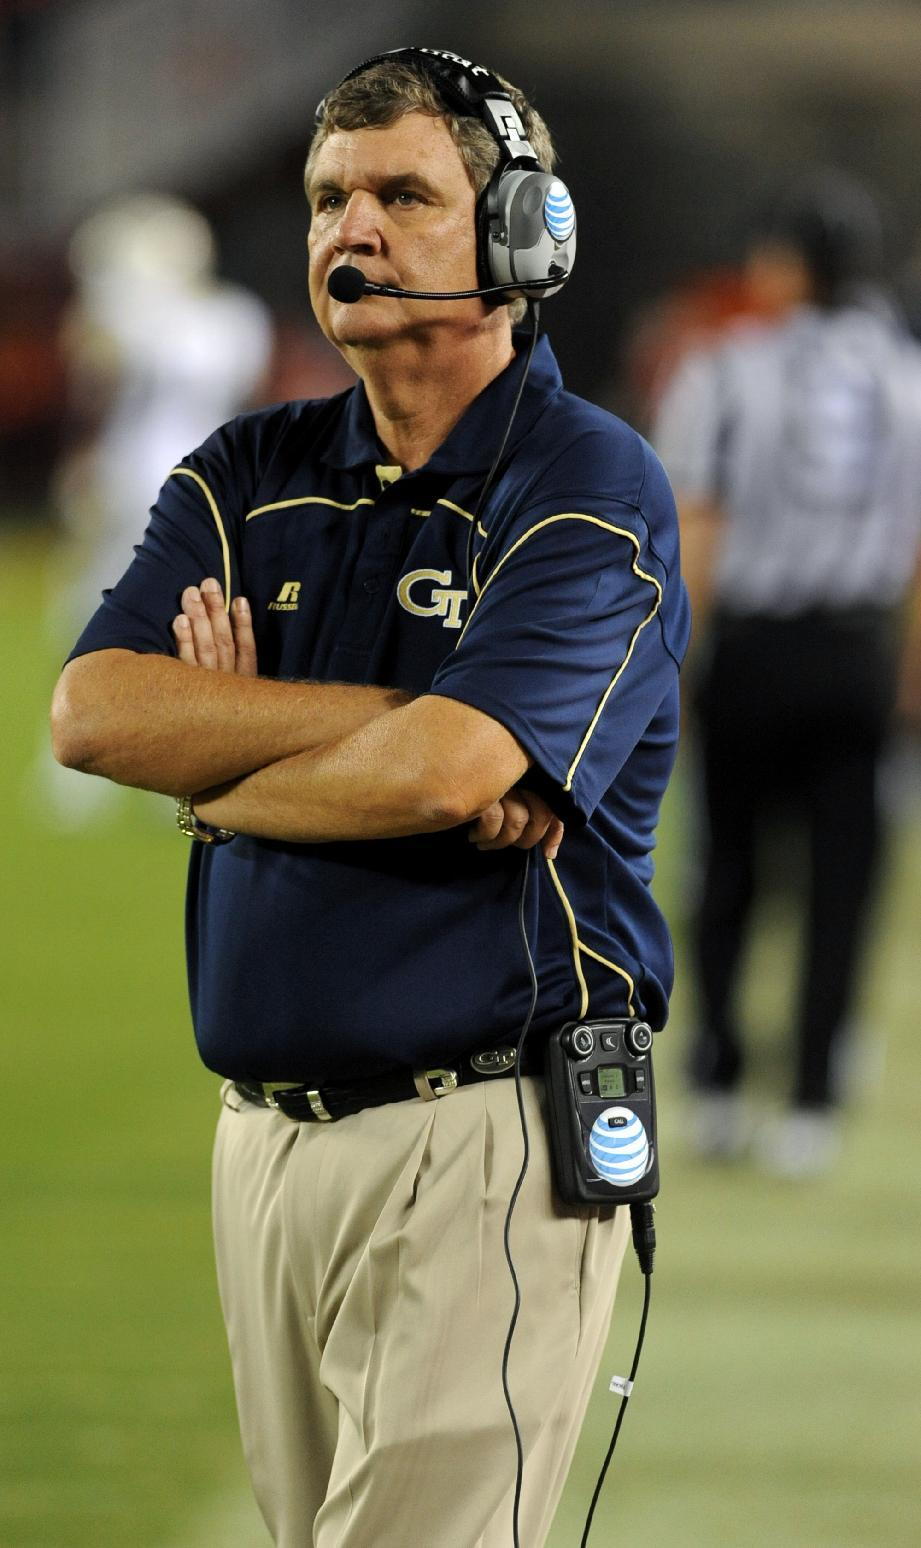 Georgia Tech head coach Paul Johnson watches his team against Virginia Tech during the second half of an NCAA college football game, Monday, Sept. 3, 2012, at Lane Stadium in Blacksburg, Va. Virginia Tech won 20-17 in overtime. (AP Photo/Don Petersen)